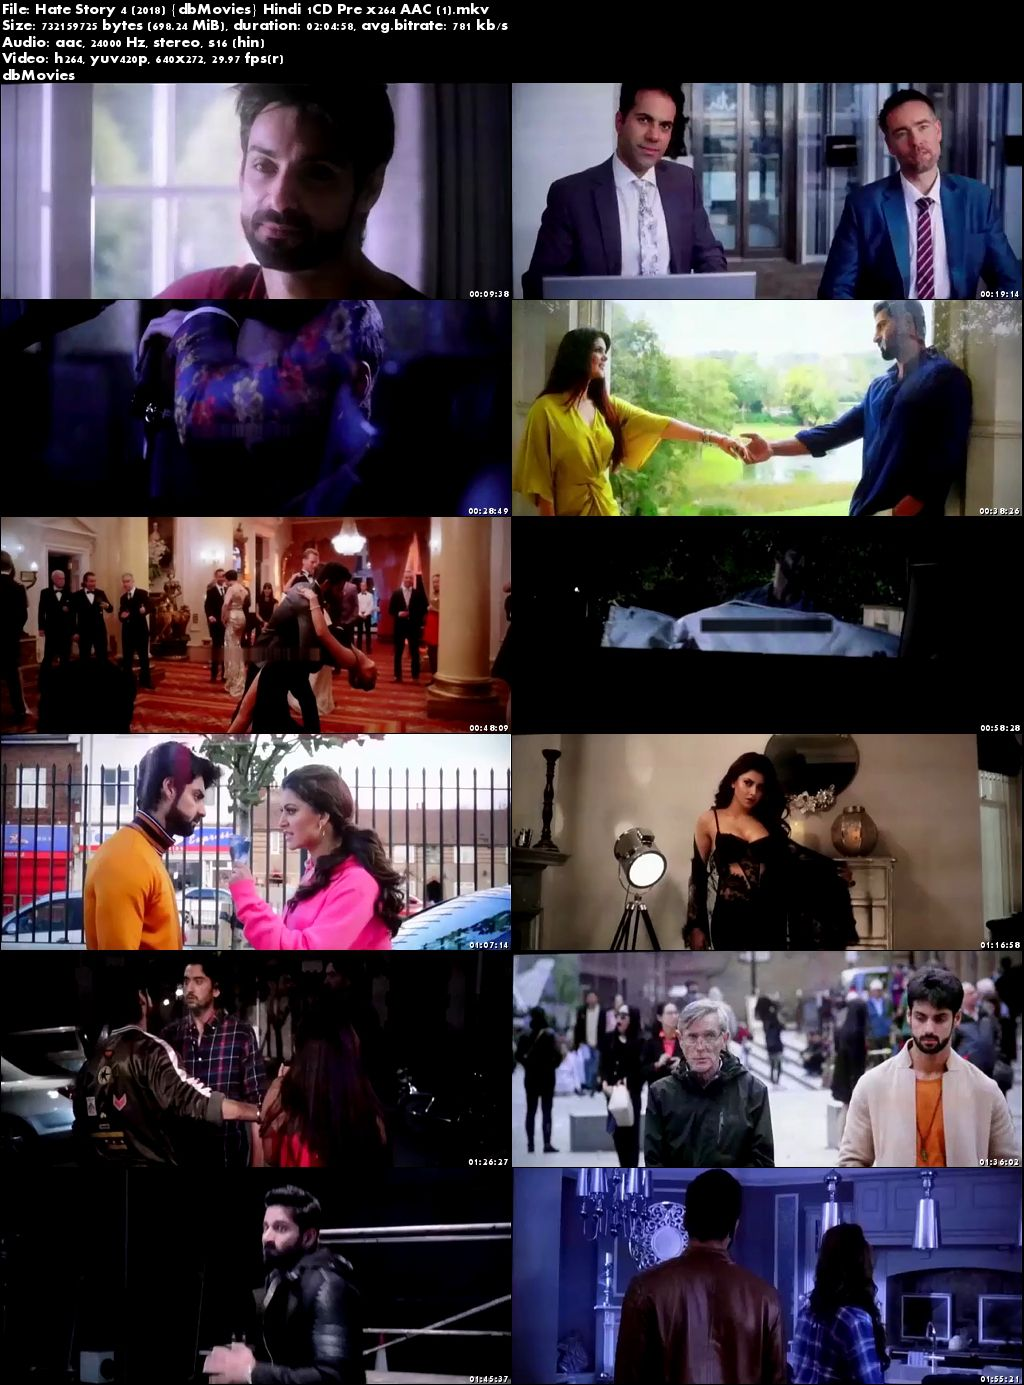 Screen Shots Hate Story 4 2018 Full Movie Download Hindi Pre-DVDRip x264